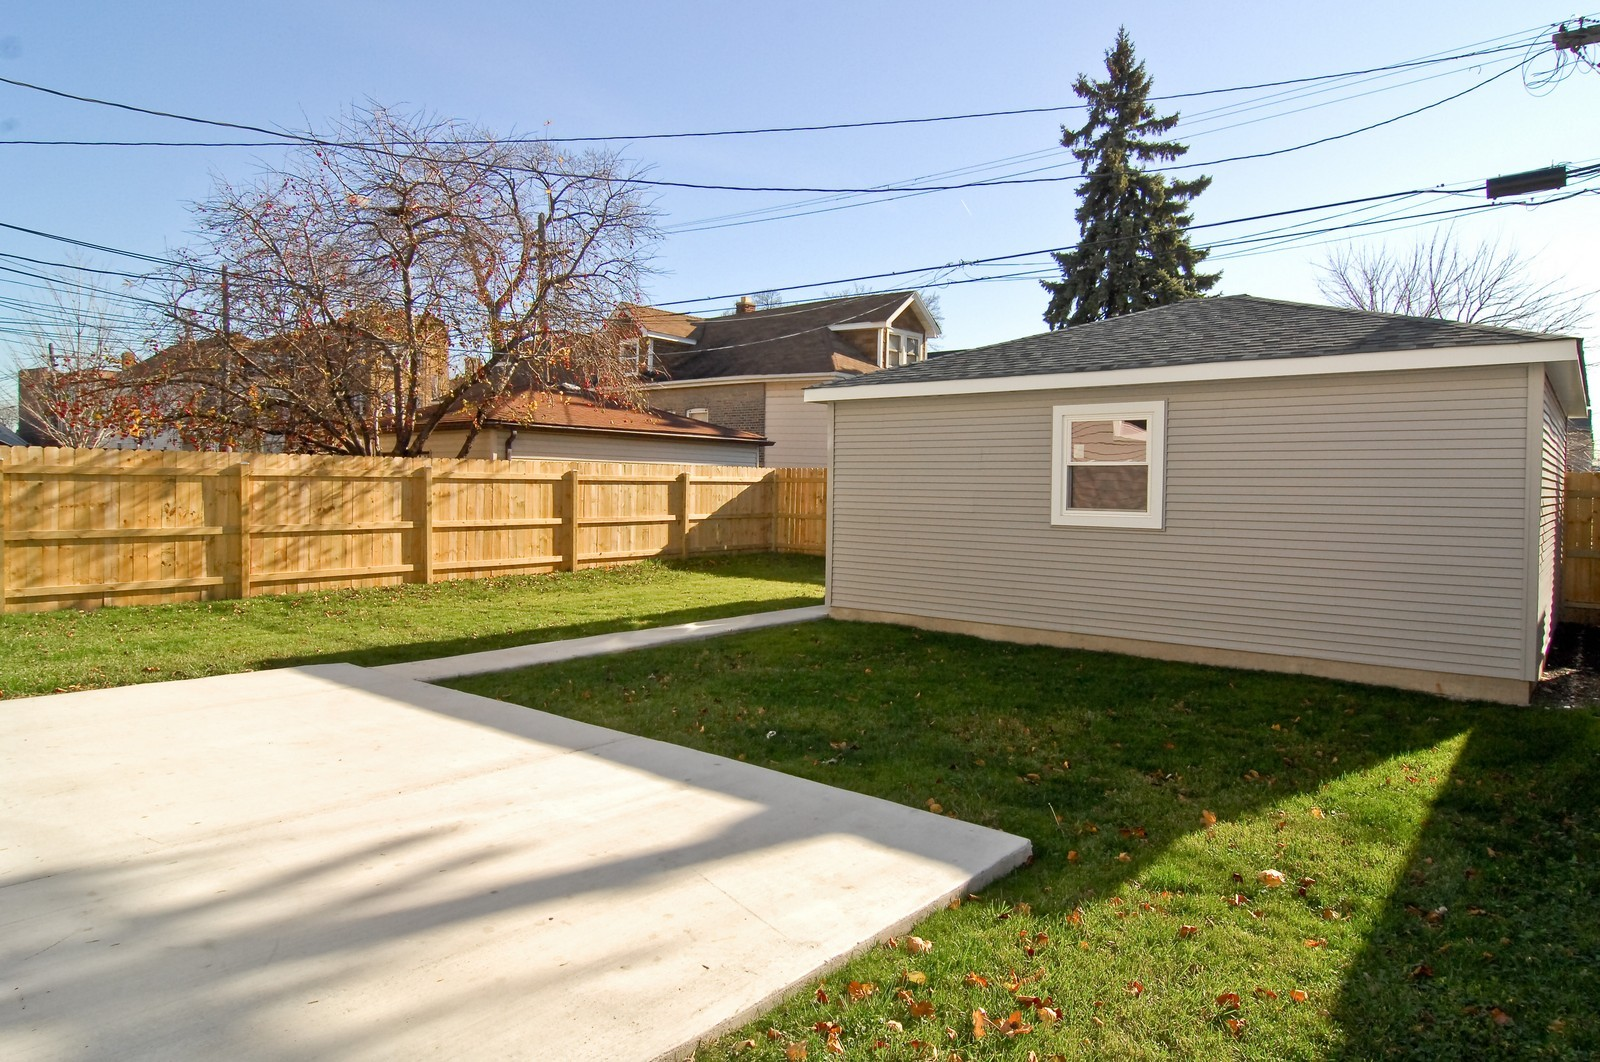 Real Estate Photography - 3743 W Wrightwood, Chicago, IL, 60647 - Back Yard